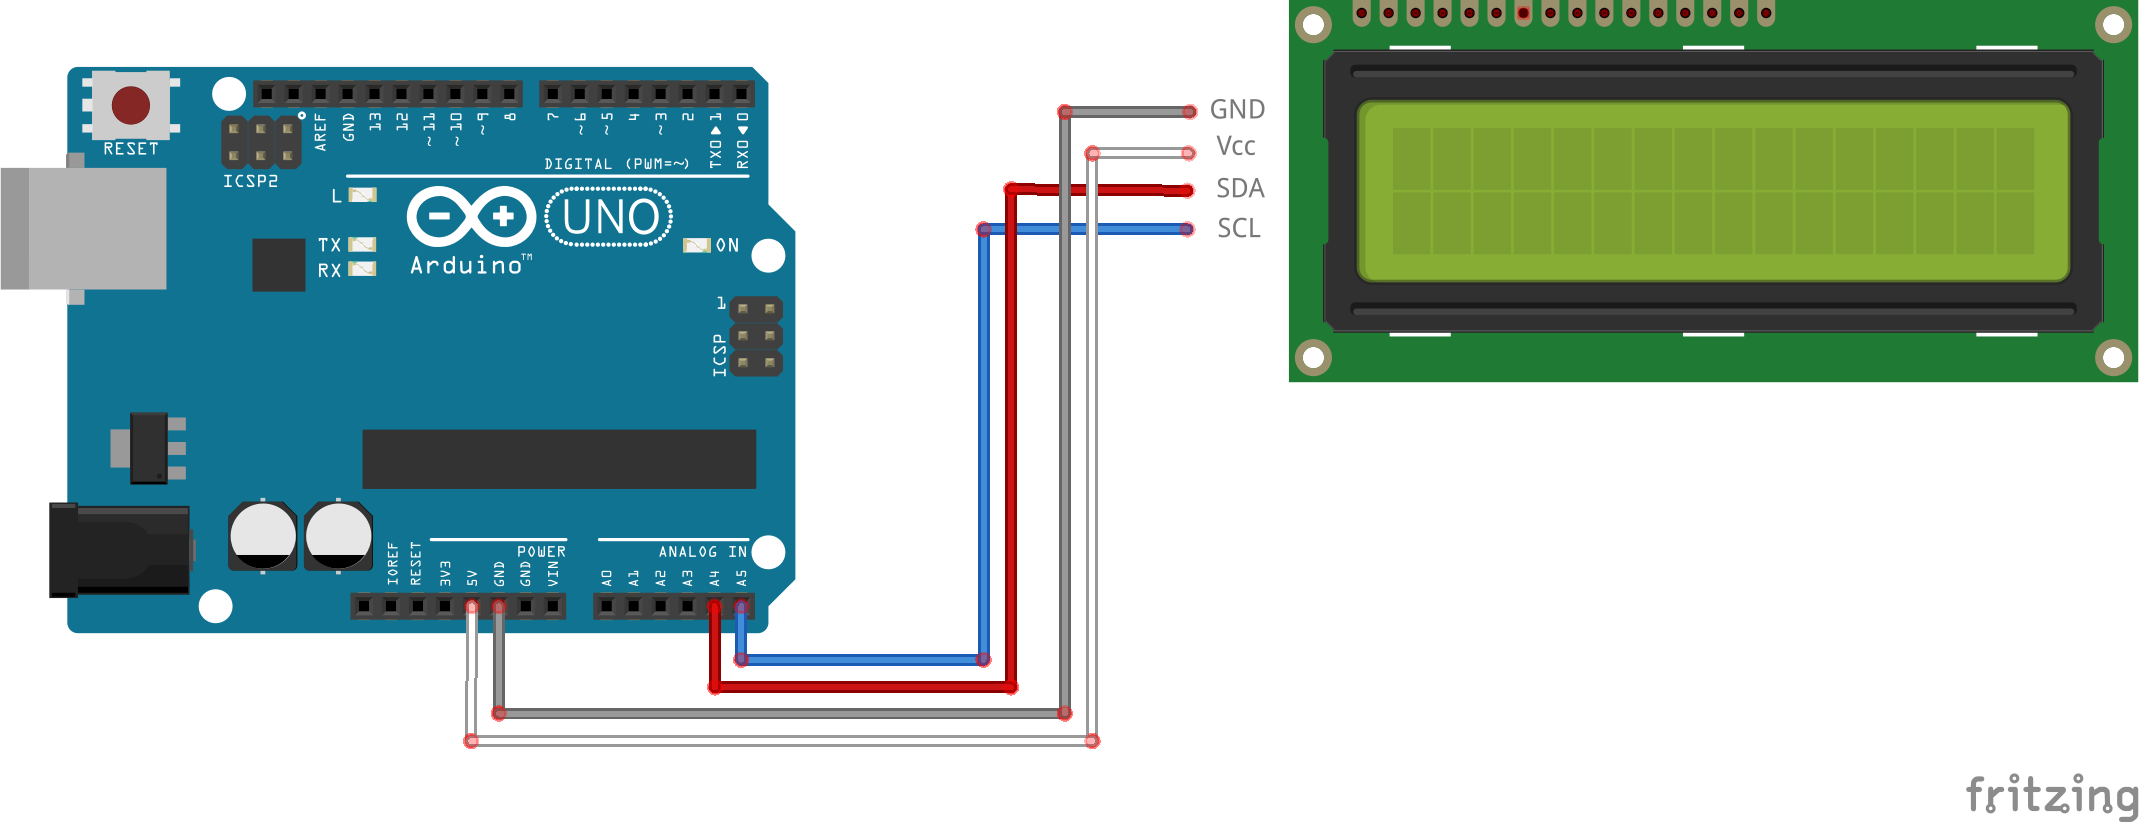 #11 Text and custom symbols on an I2C LCD display schakelschema